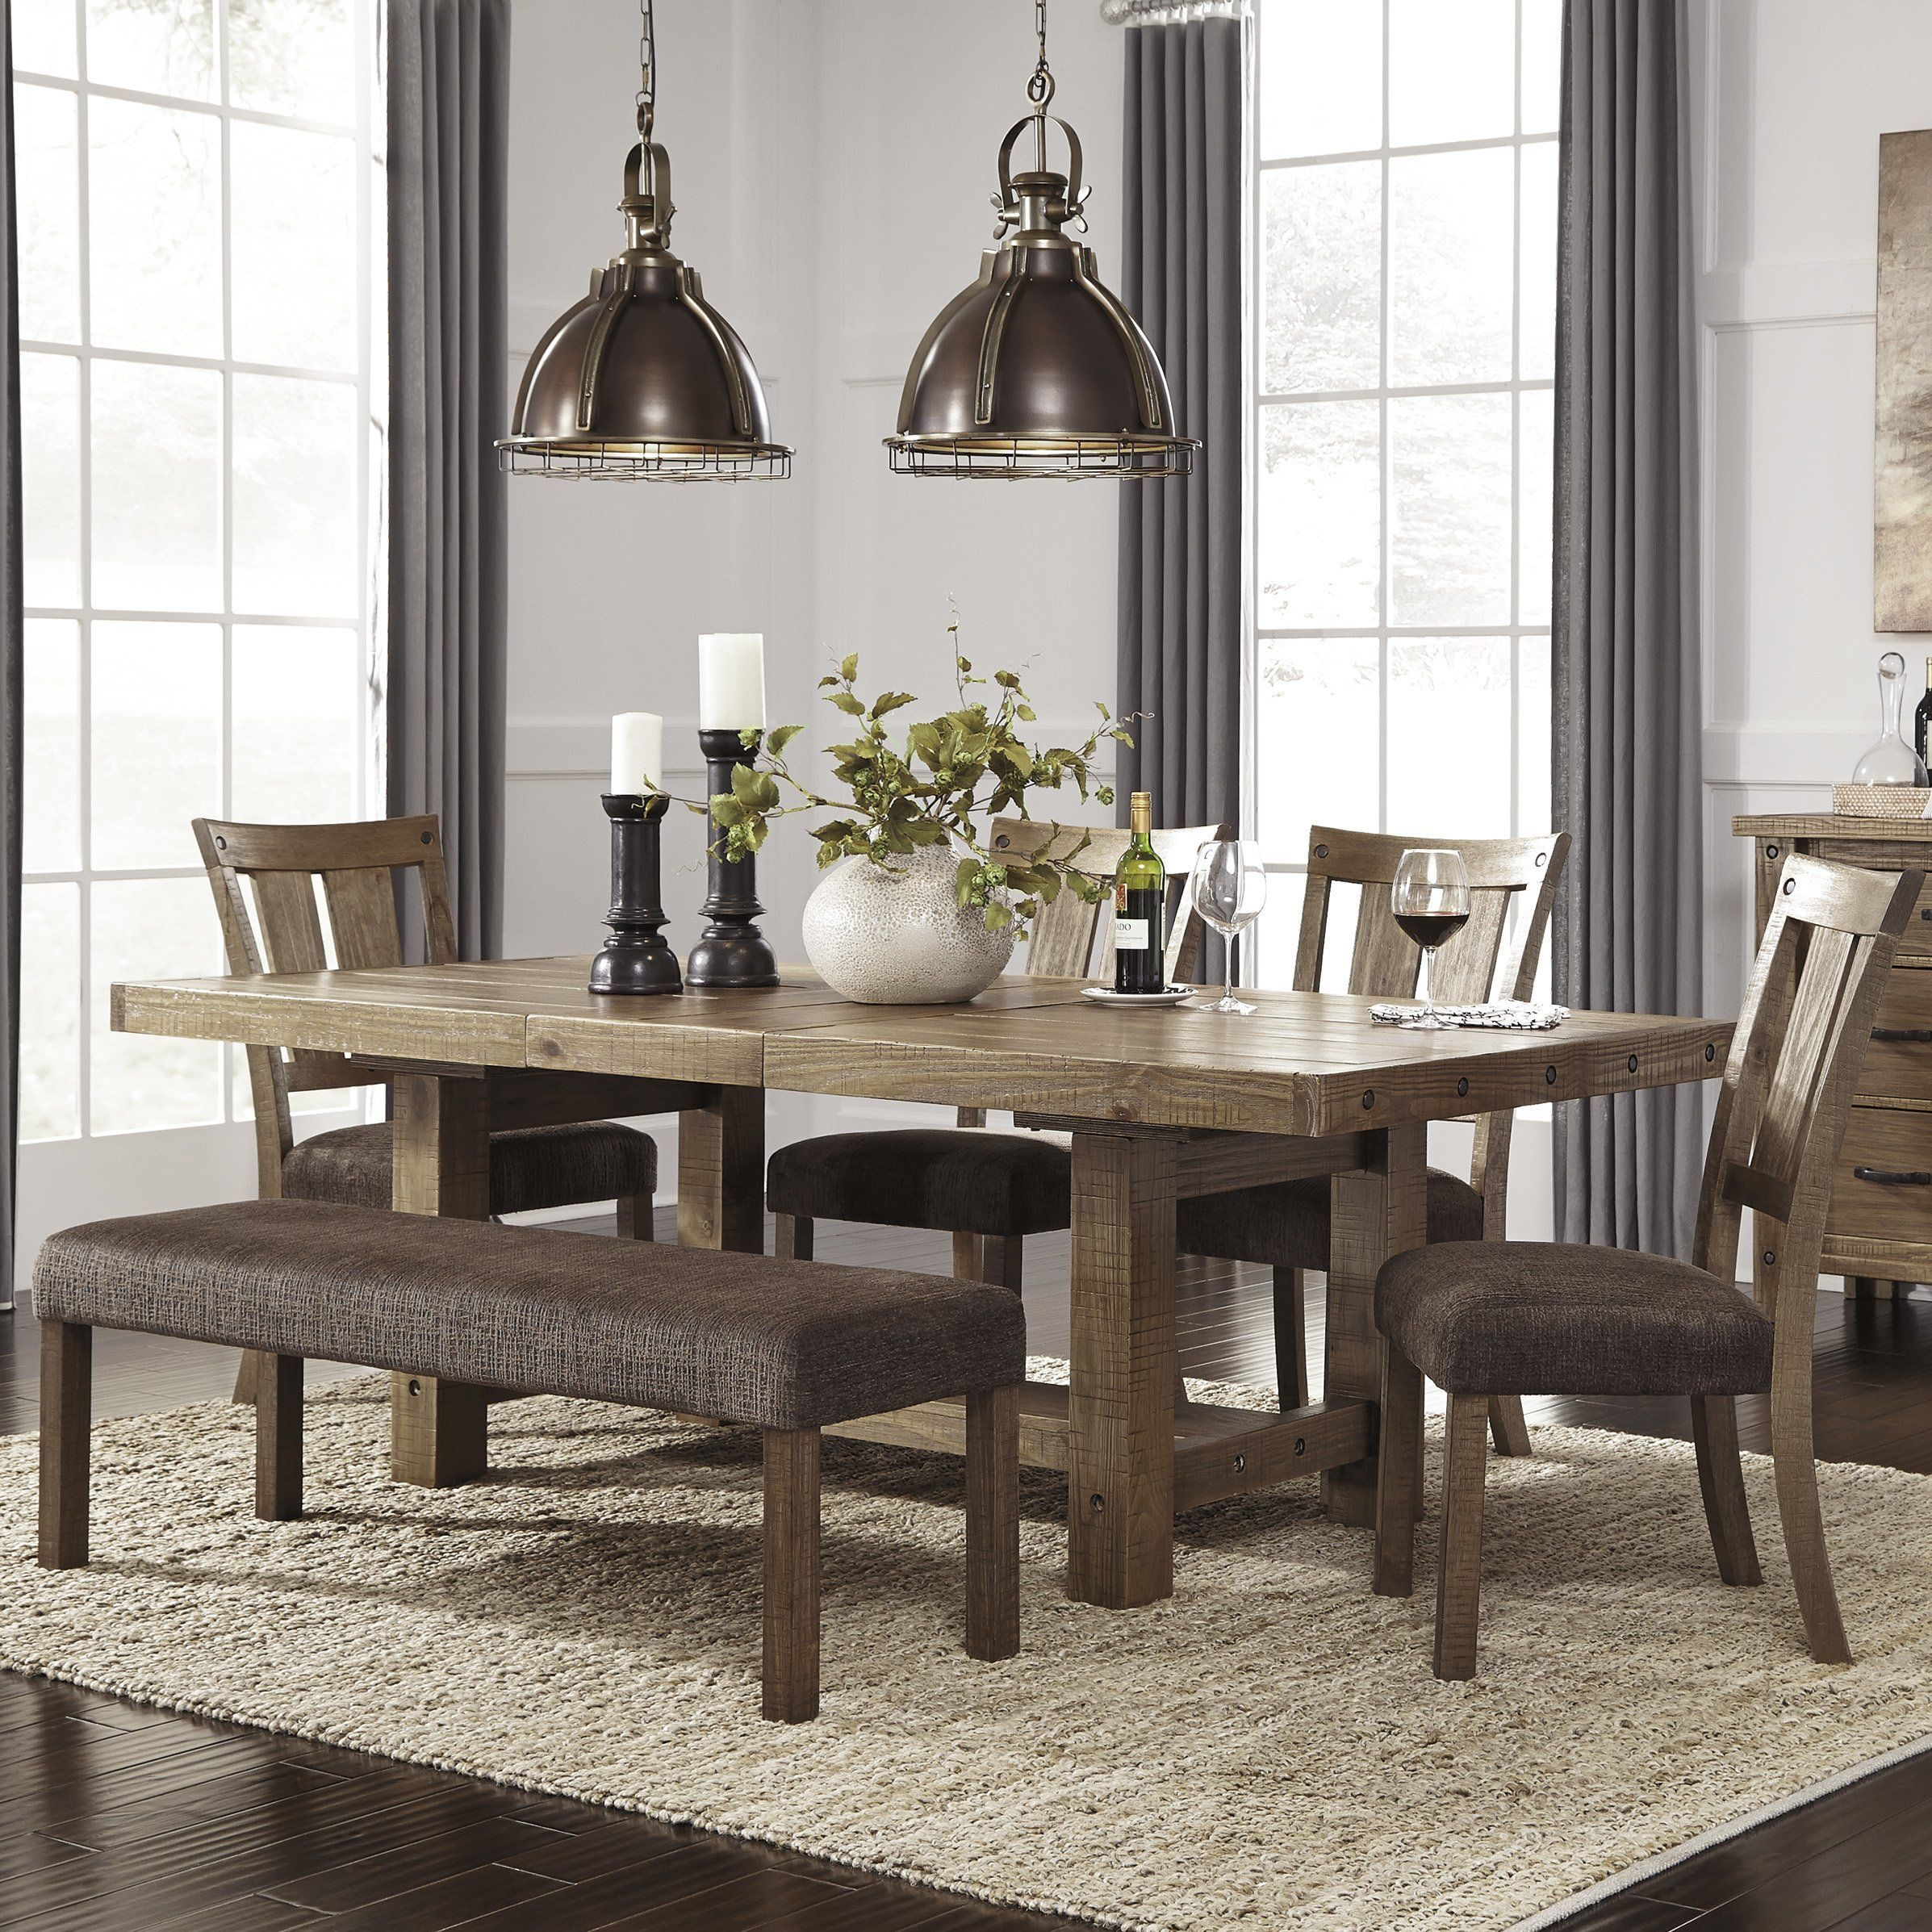 7 6piece extendable dining set in dining room inspiration